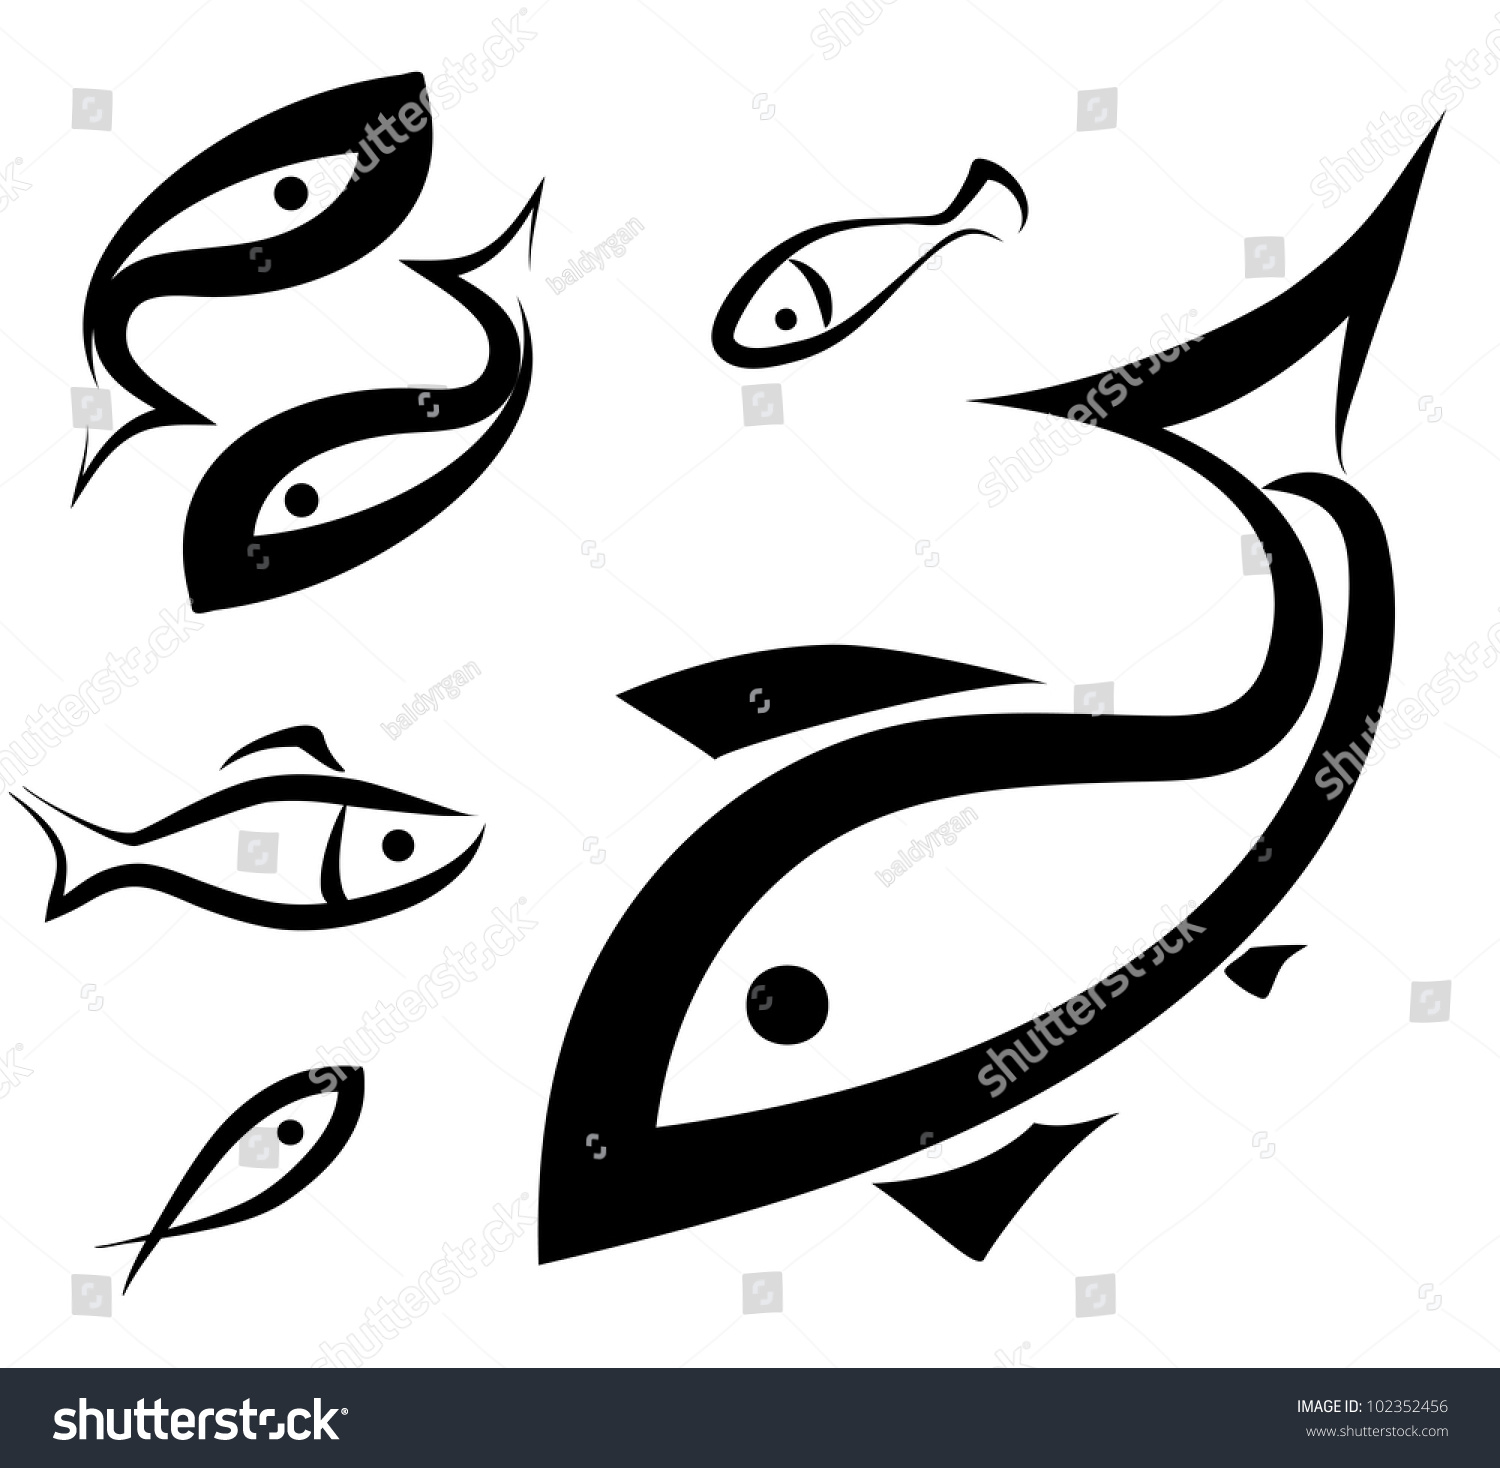 Logolike fish symbol set sketch simple stock vector 102352456 logo like fish symbol set sketch in simple black lines buycottarizona Gallery